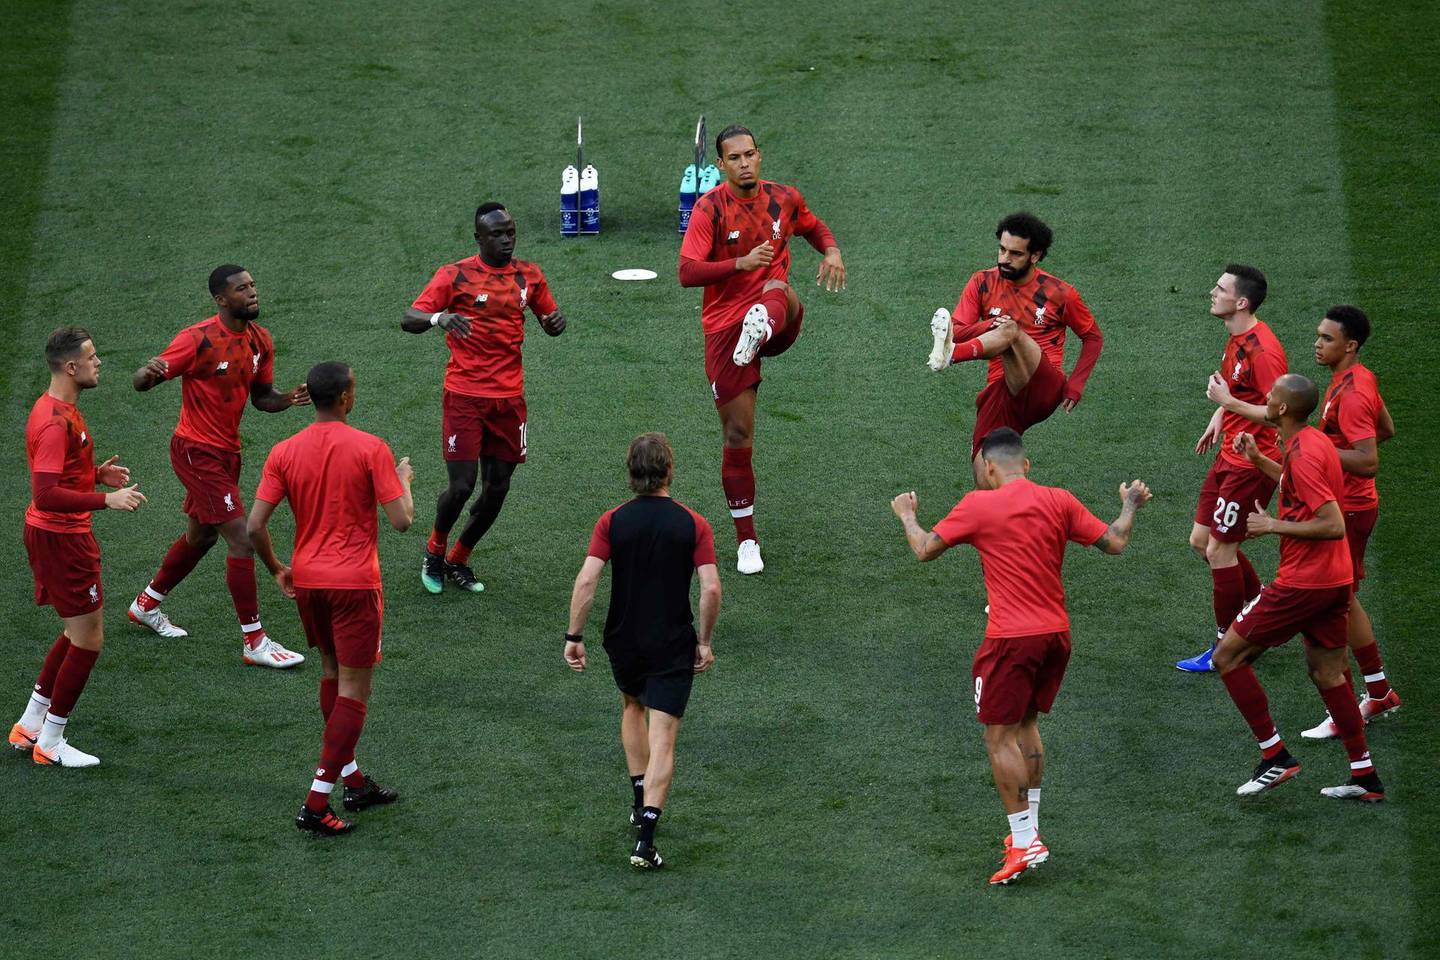 Liverpool's players warm up prior to the start of the UEFA Champions League final football match between Liverpool and Tottenham Hotspur at the Wanda Metropolitan Stadium in Madrid on June 1, 2019. / AFP / PIERRE-PHILIPPE MARCOU